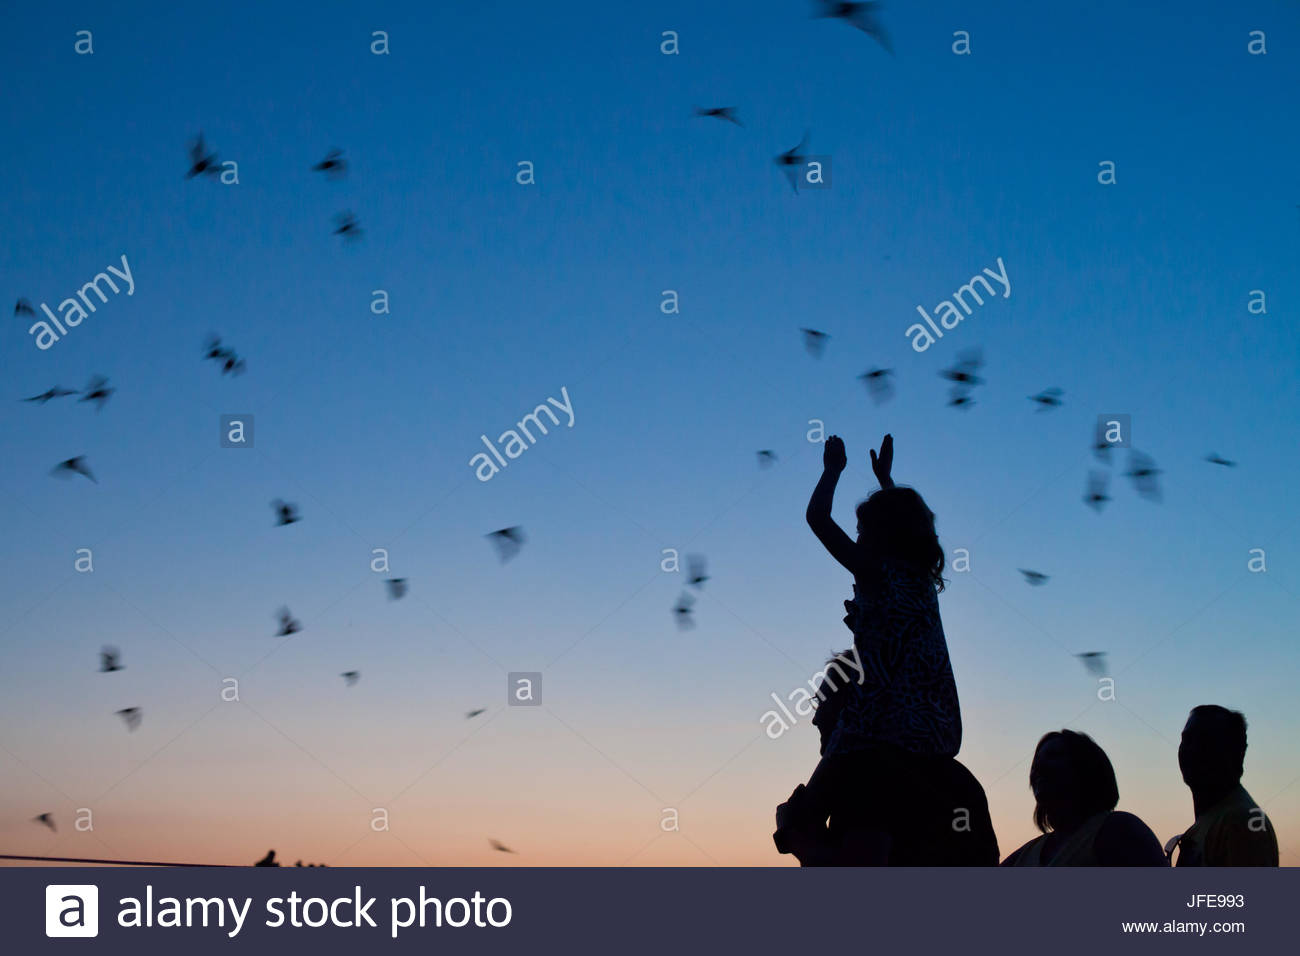 Silhouetted onlookers watch as bats emerge from a cave at sunset. - Stock Image